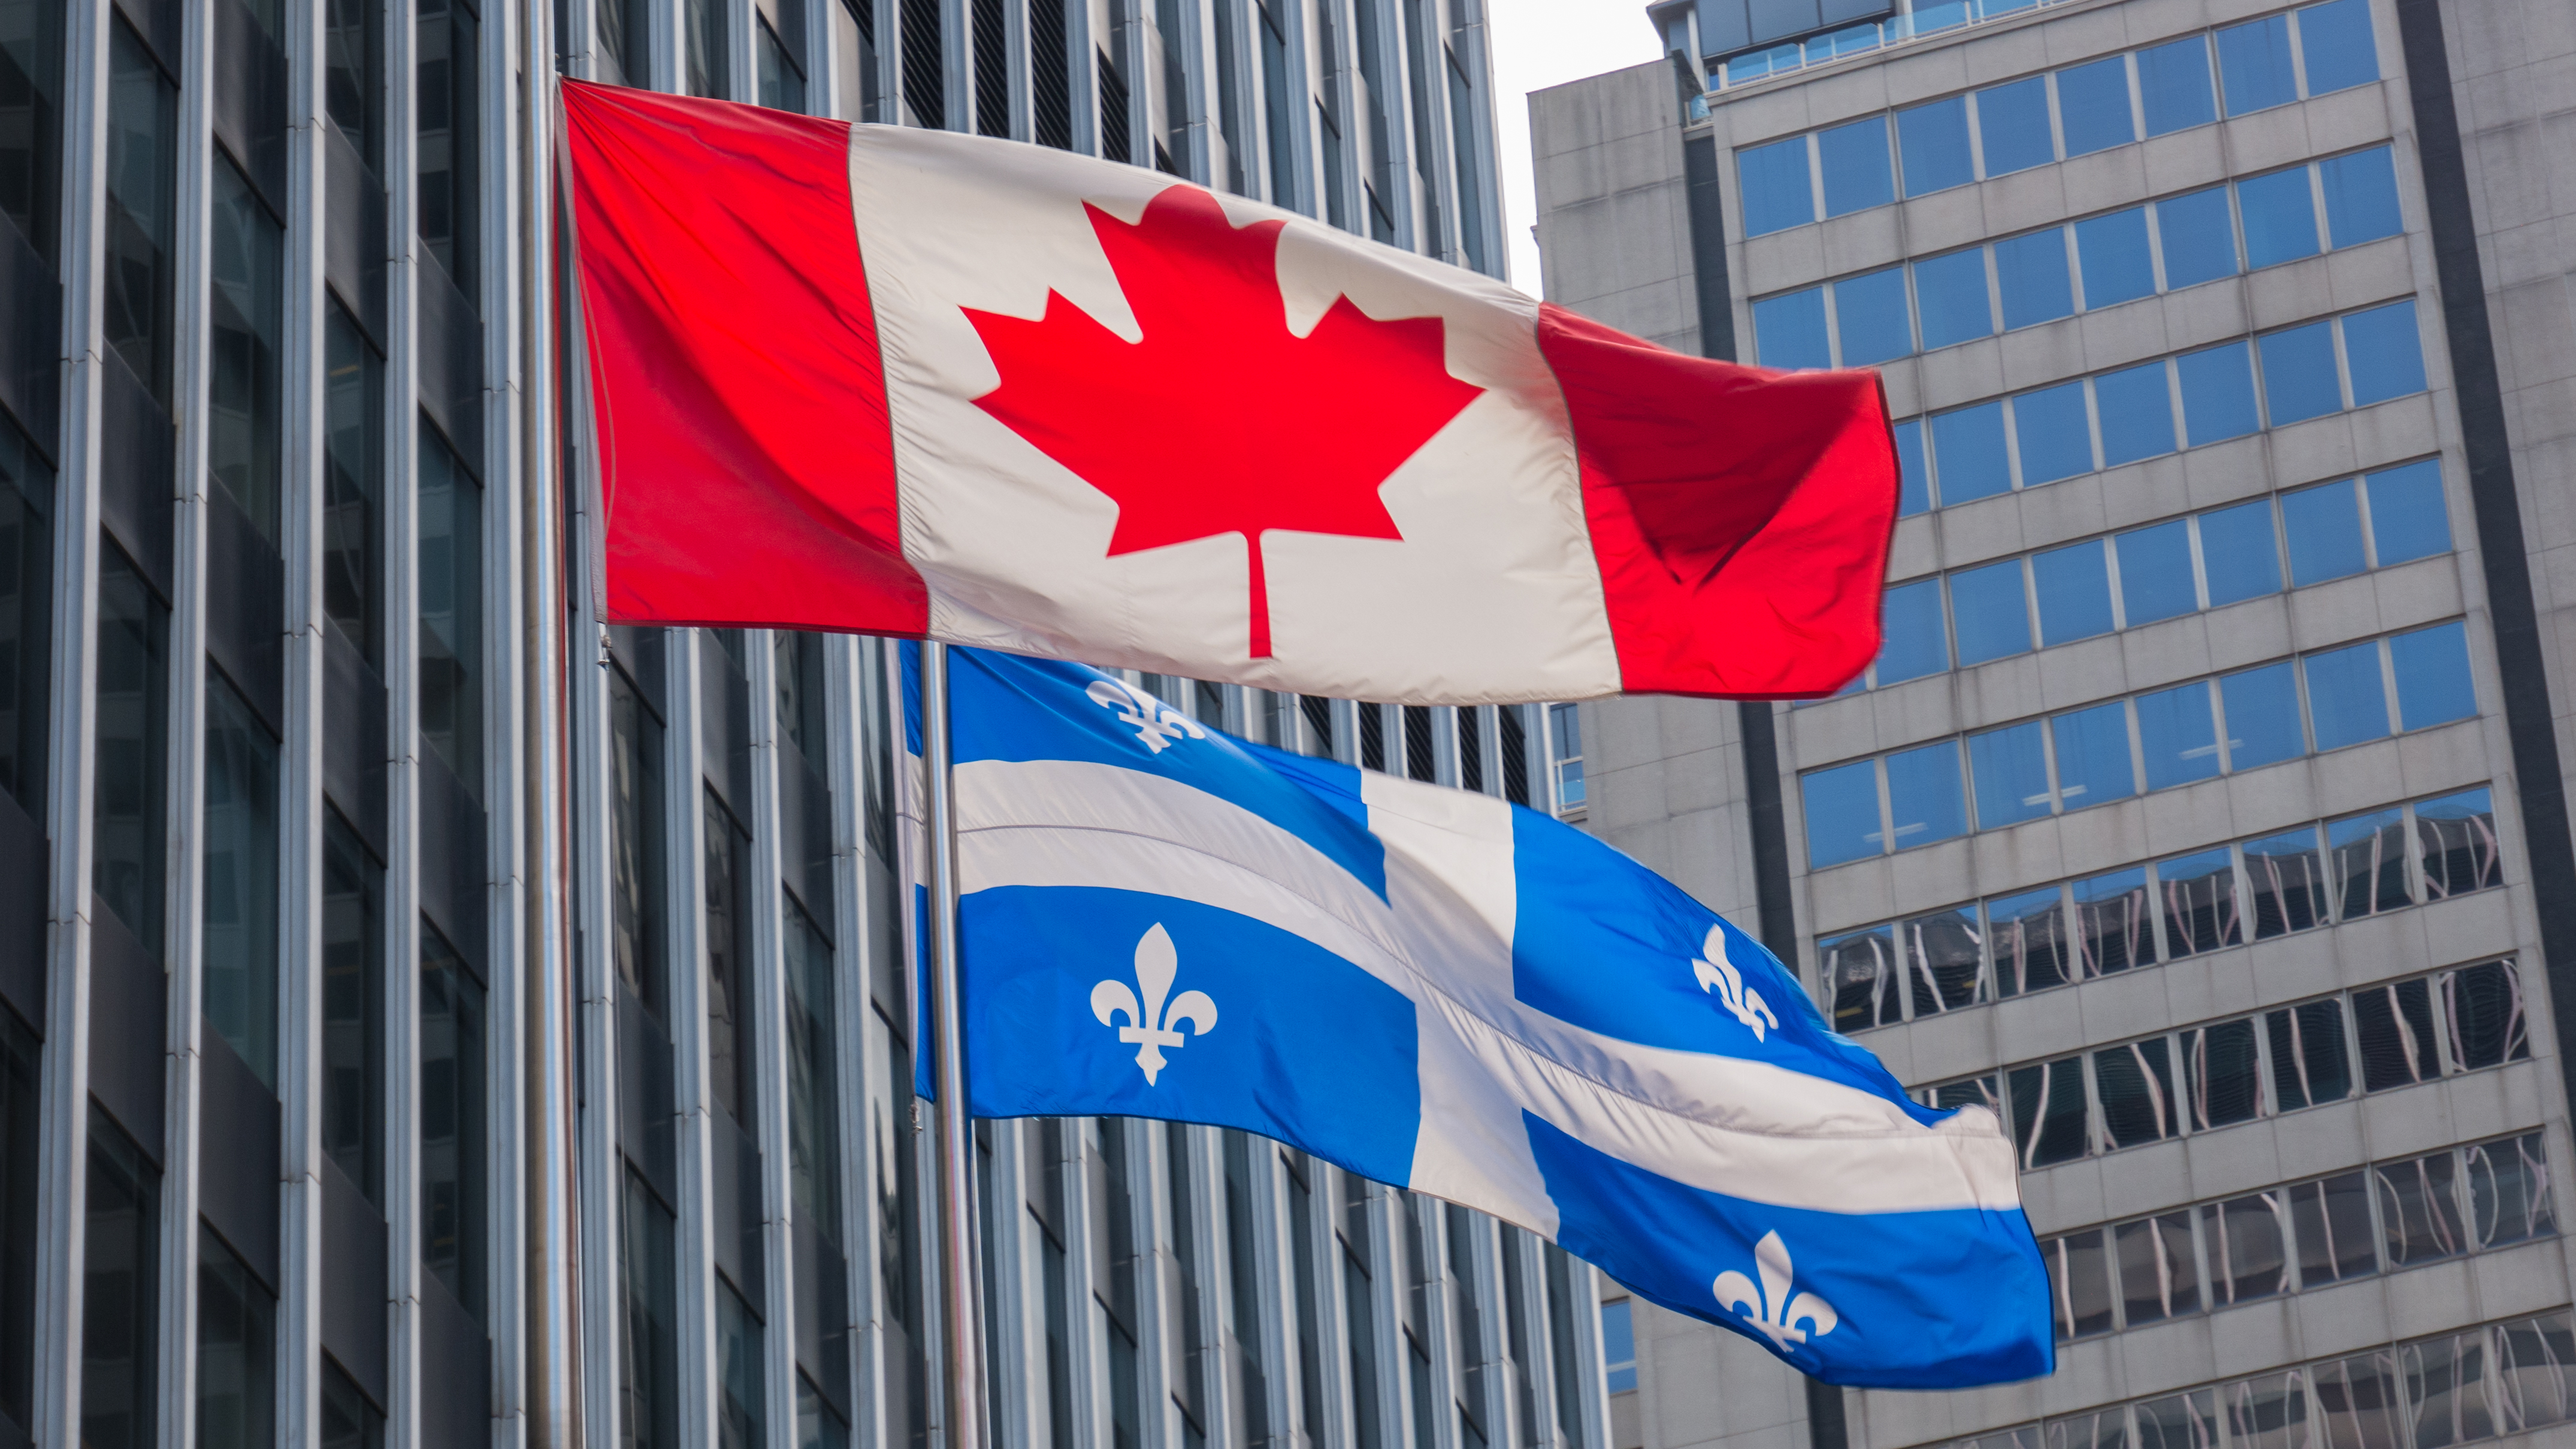 Canada and Quebec Flags 2